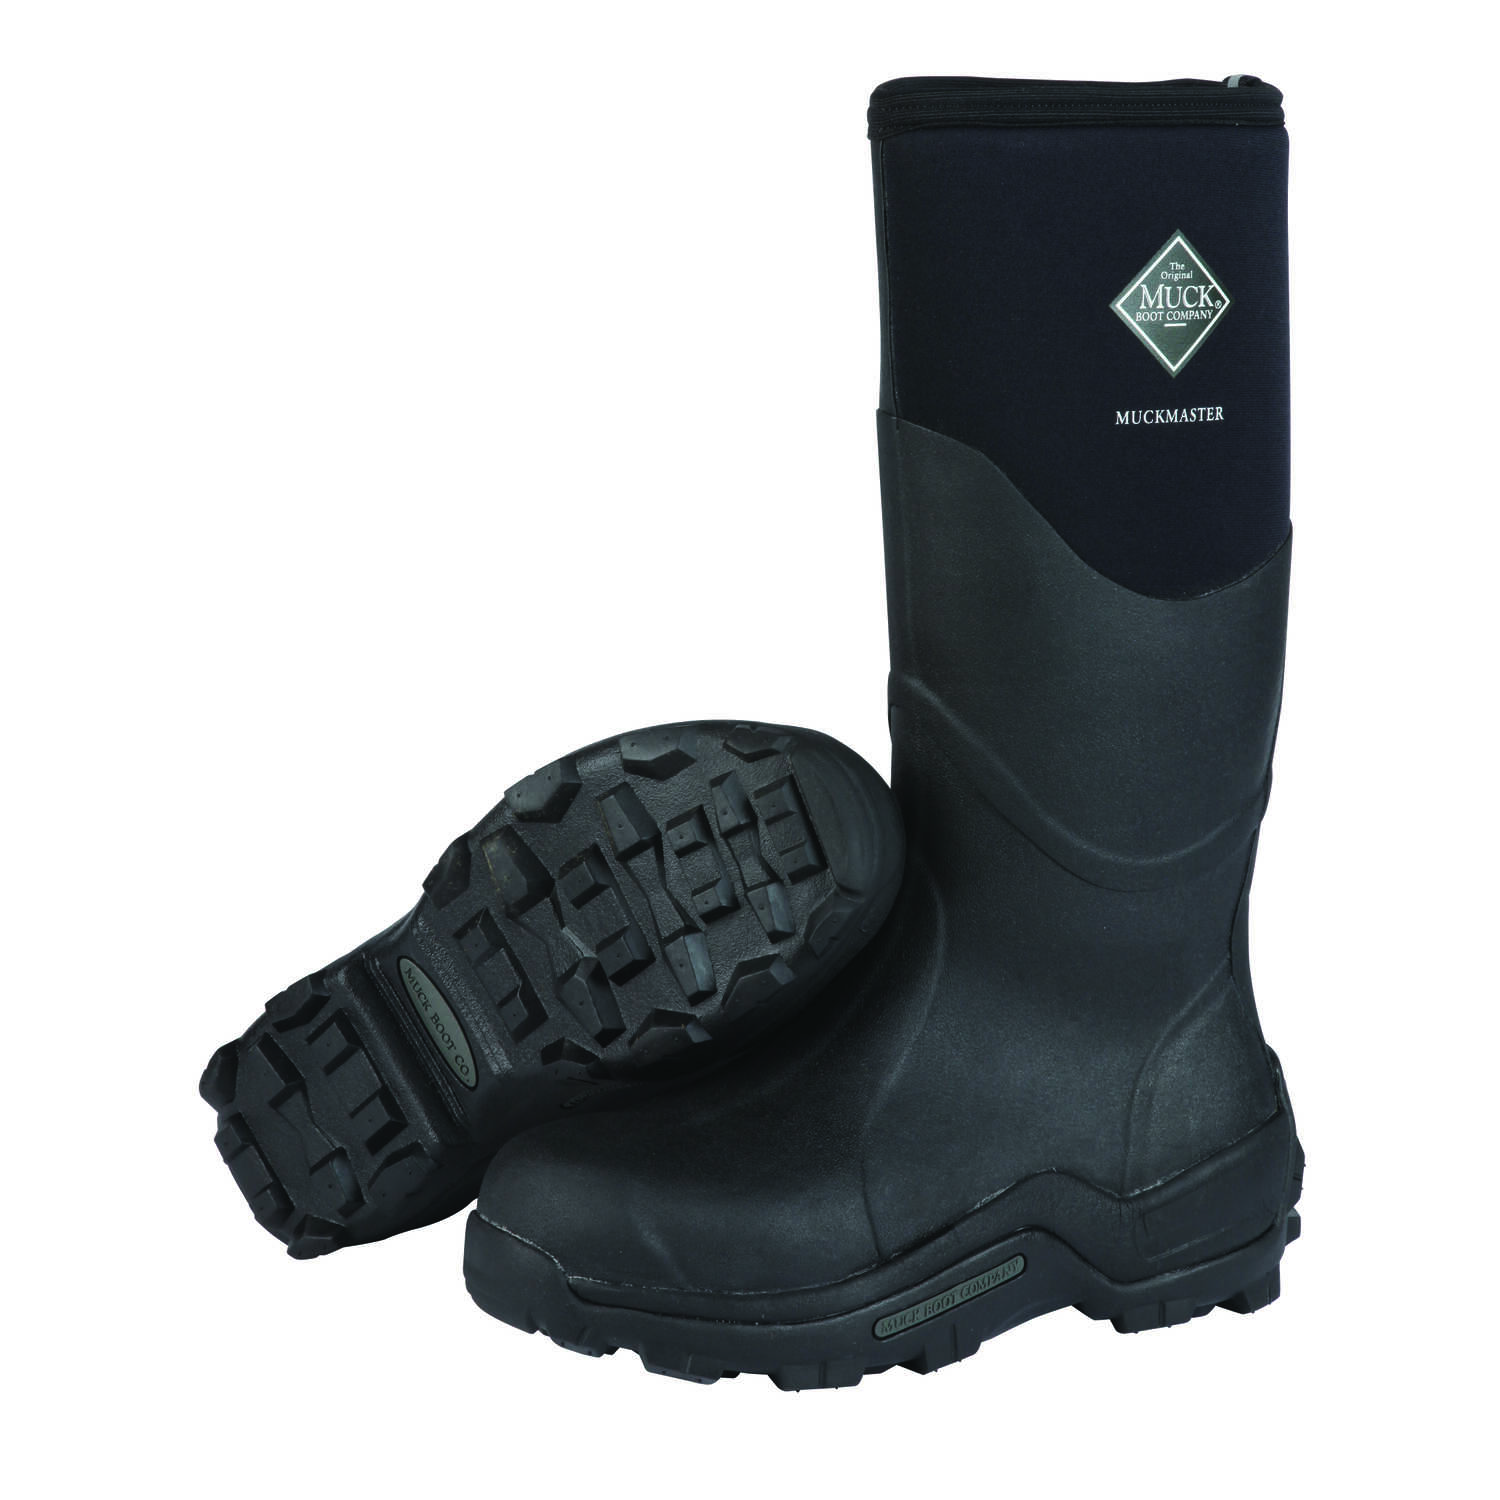 The Original Muck Boot Company  Muckmaster  Men's  Boots  14 US  Black